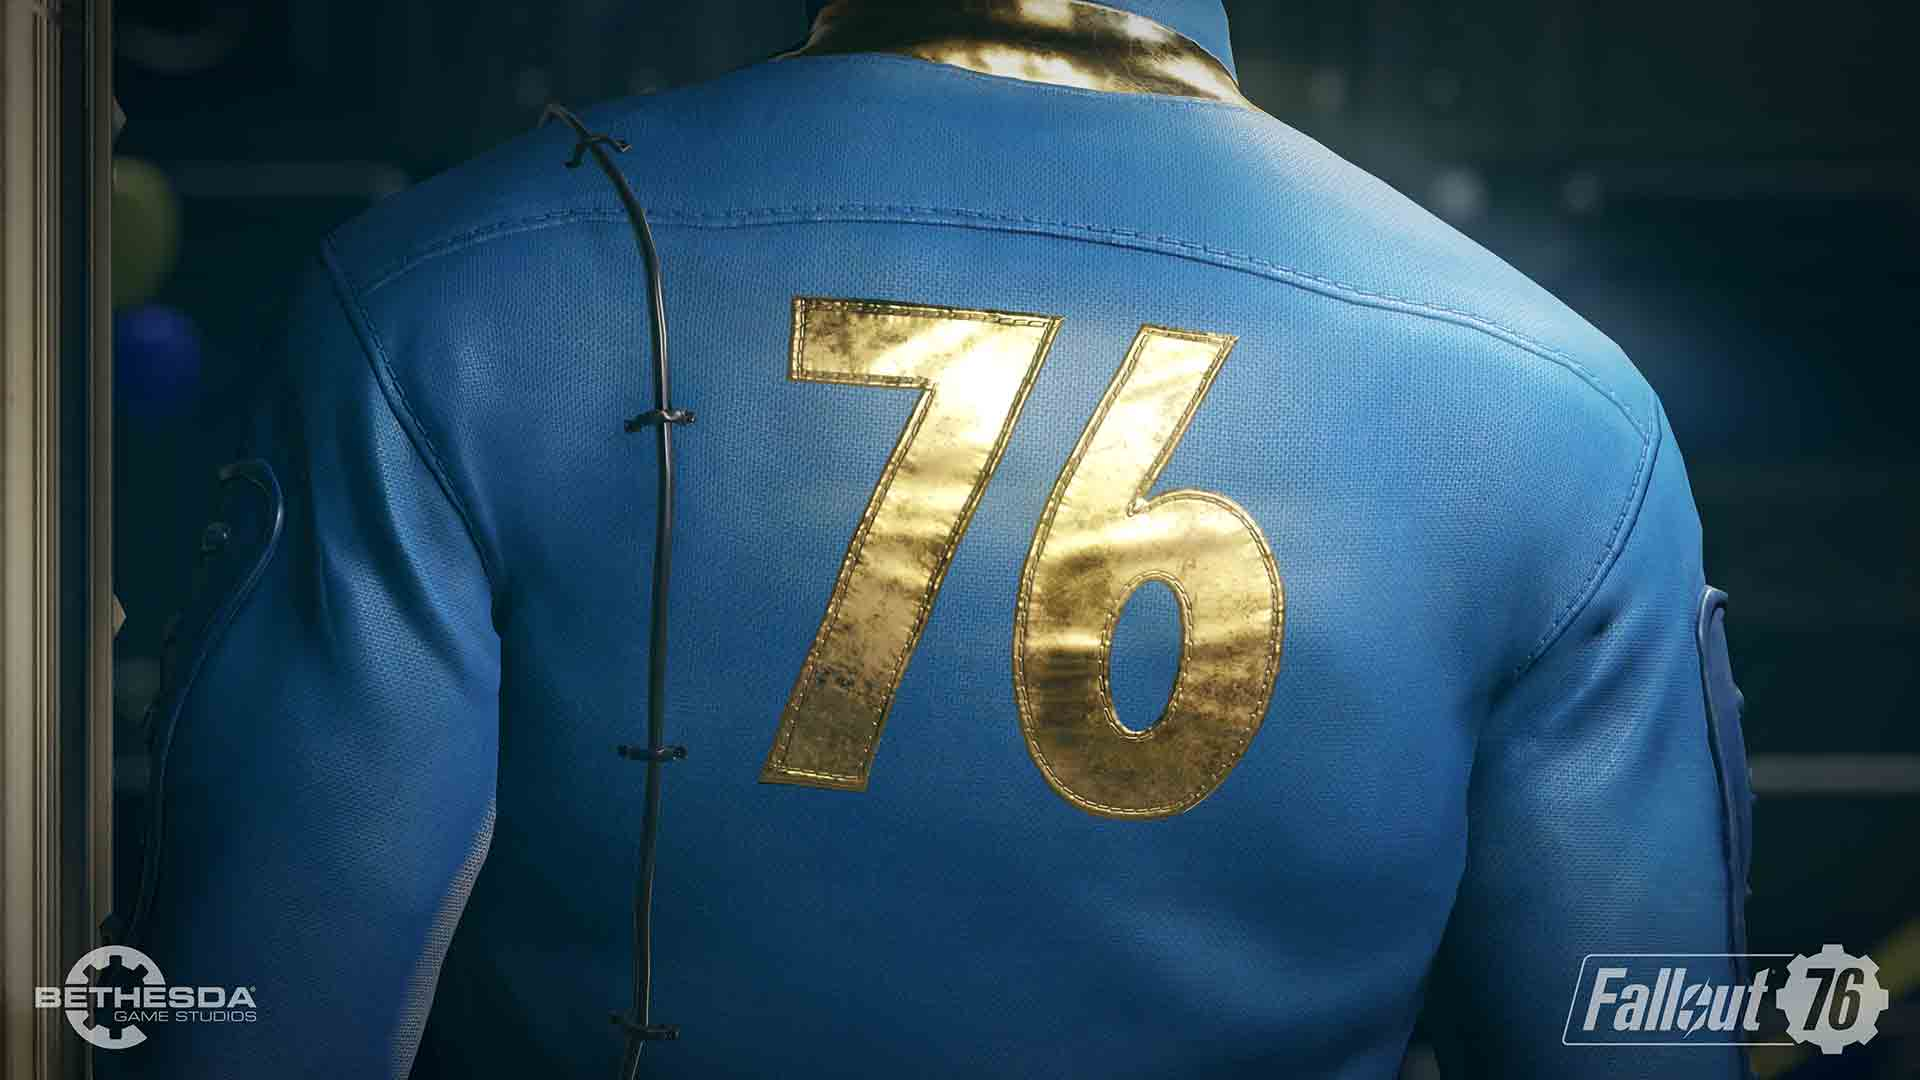 Fallout 76: An optimist's trek through the wasteland